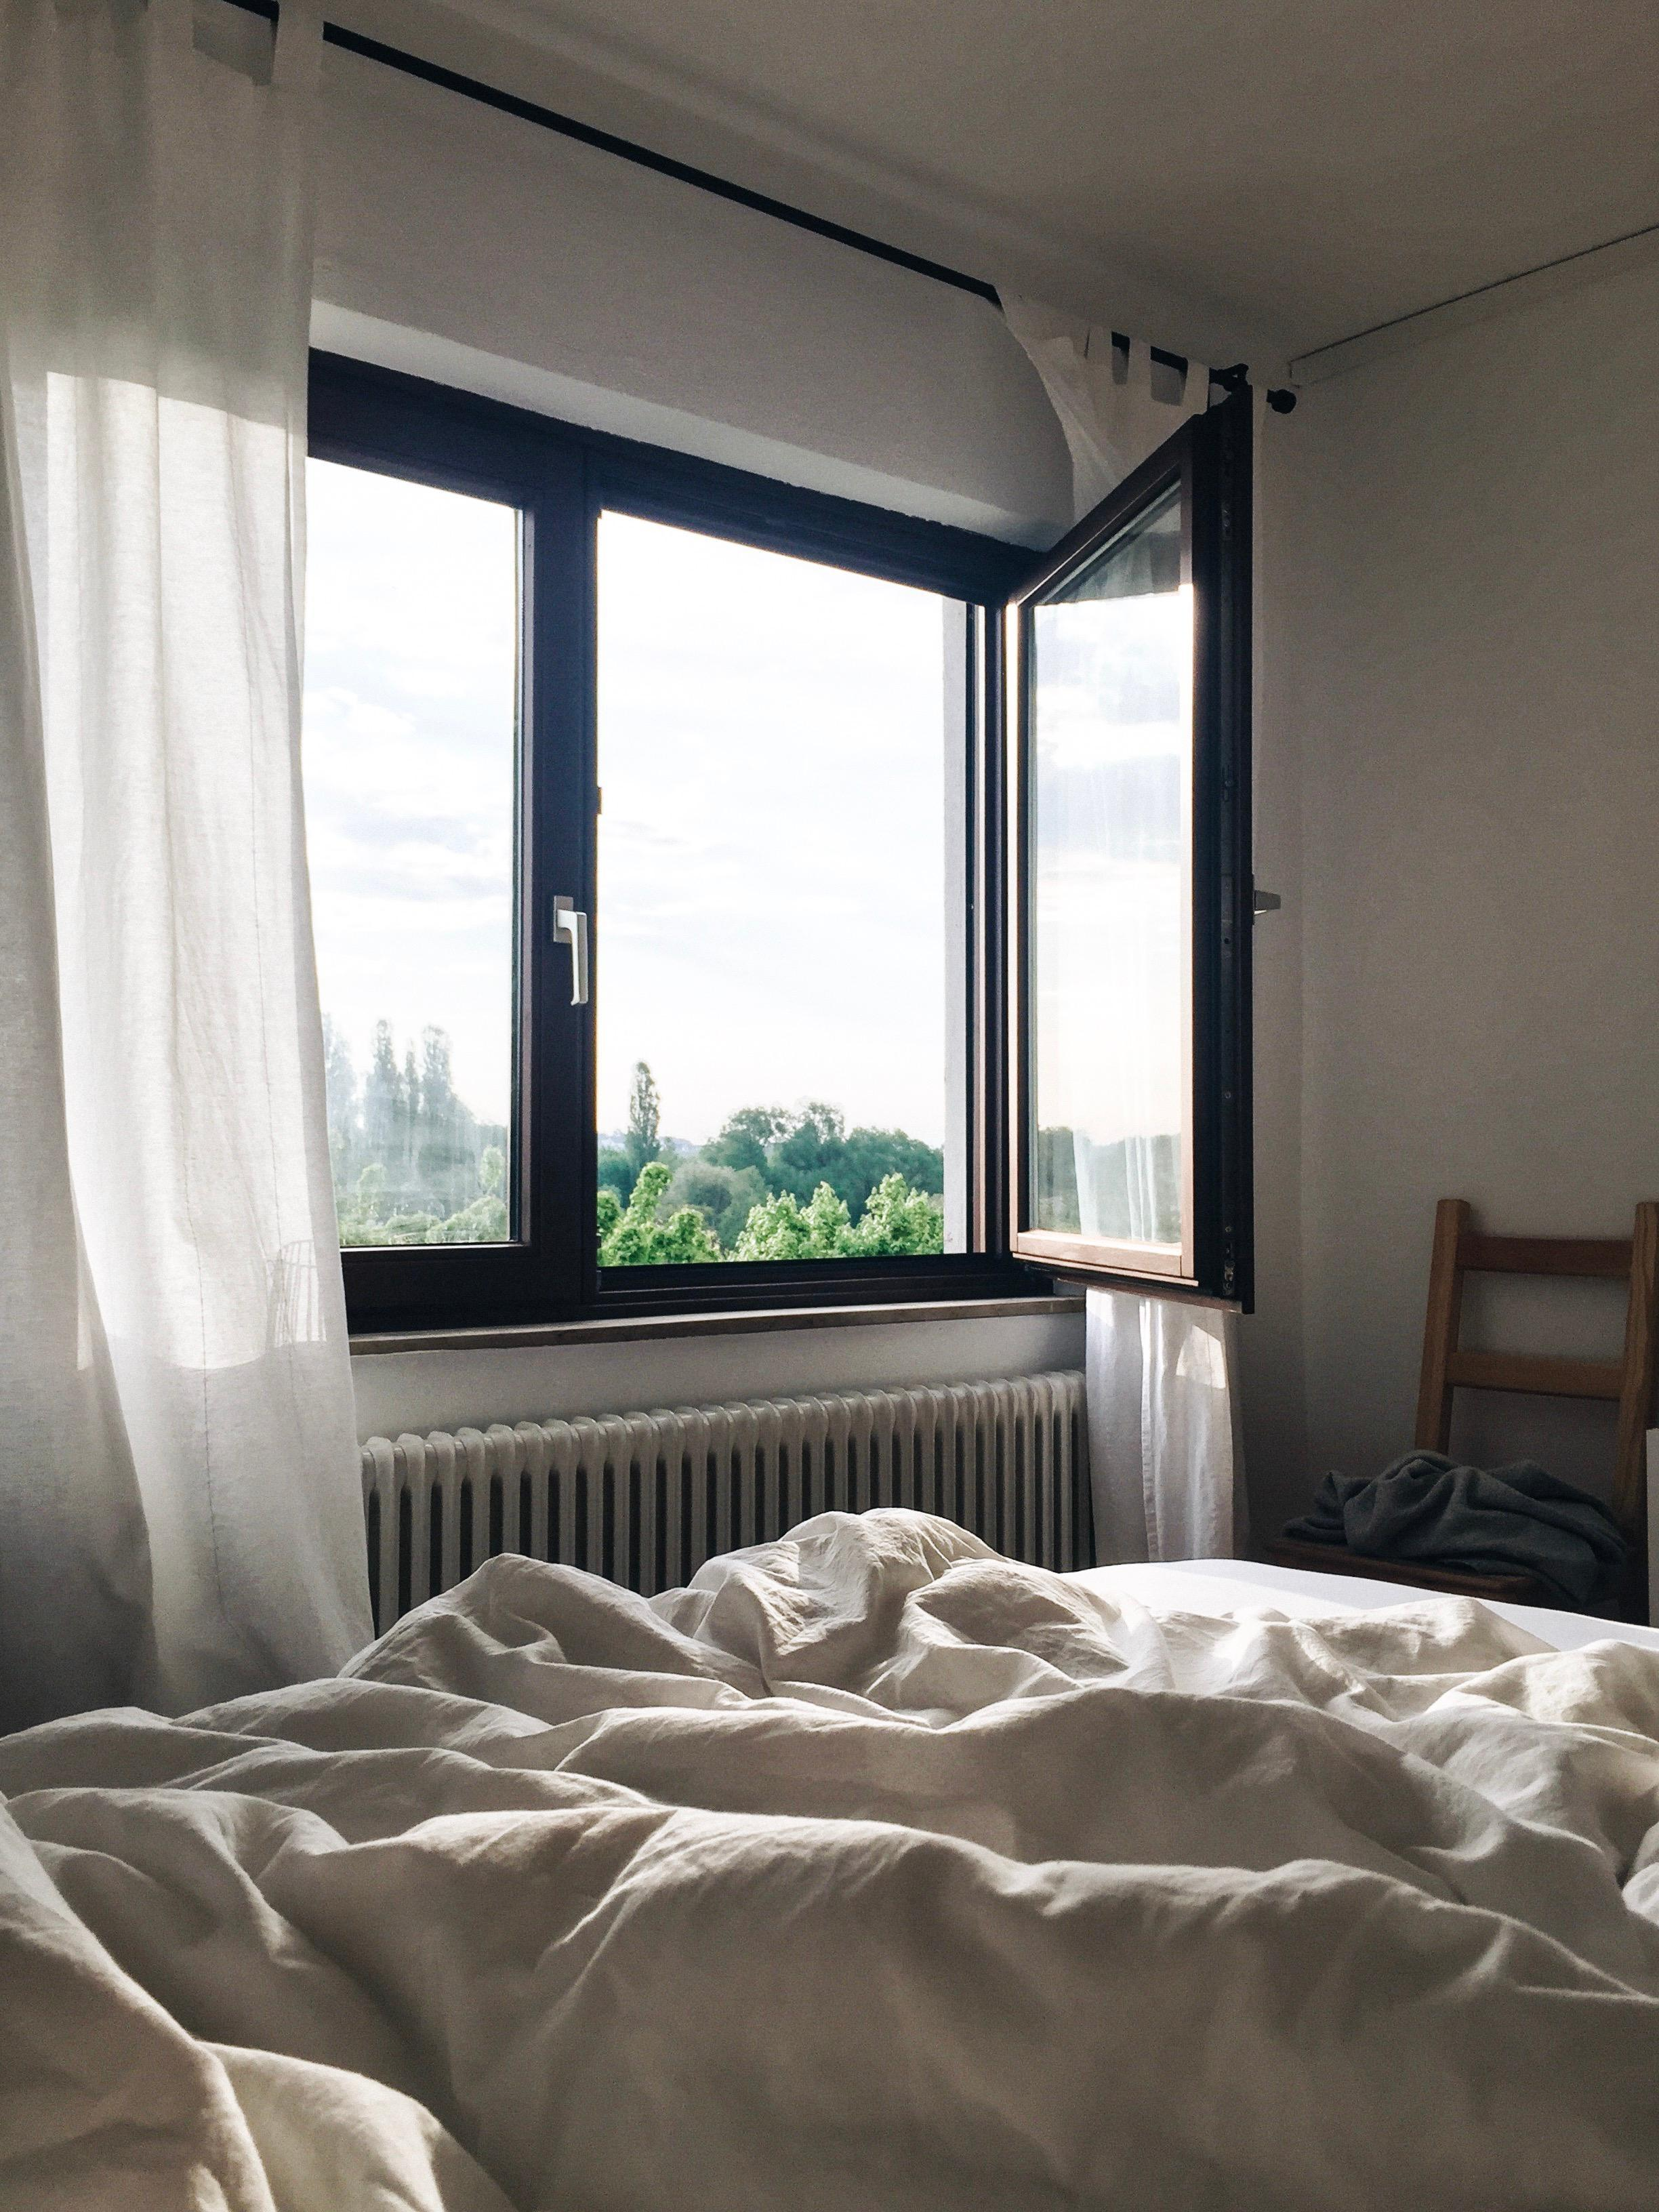 Guten Morgen. 🌿 #bedroom #interior #home #schlafzimmer #view #favouriteview #whiteinterior #chair #goodmorning